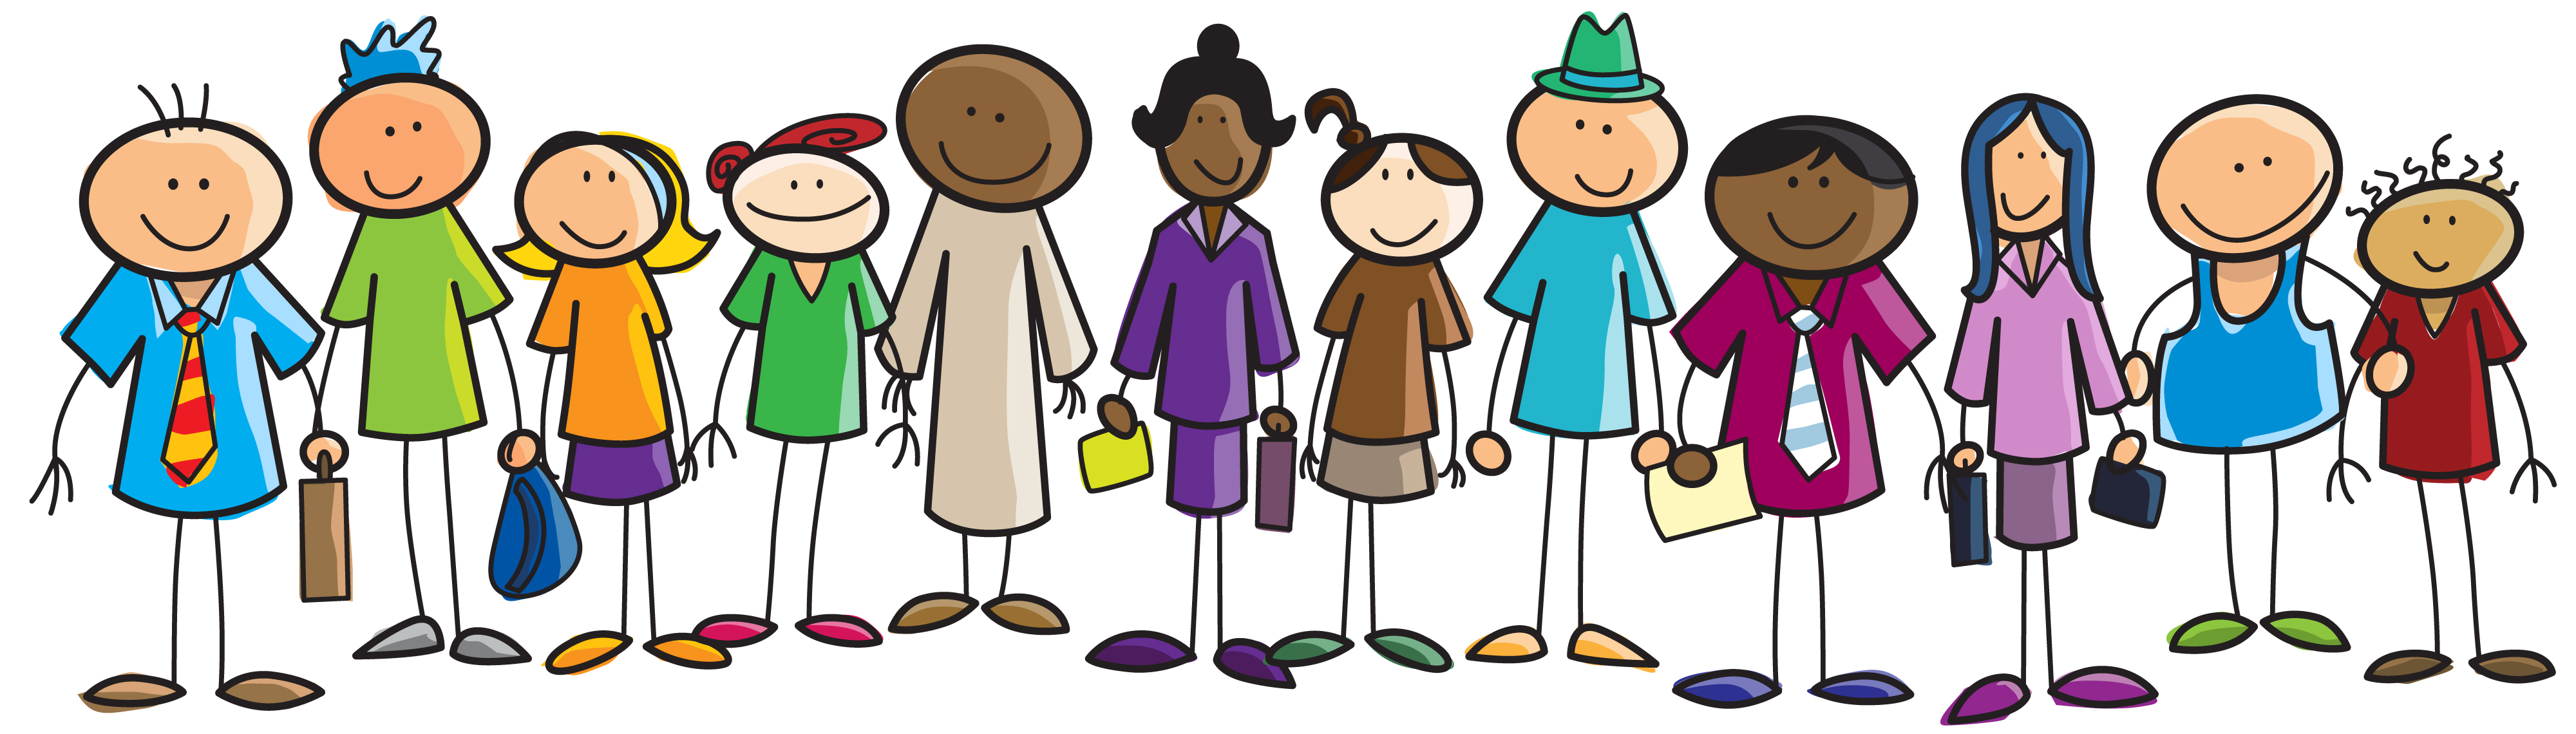 Line Of People Clipart.